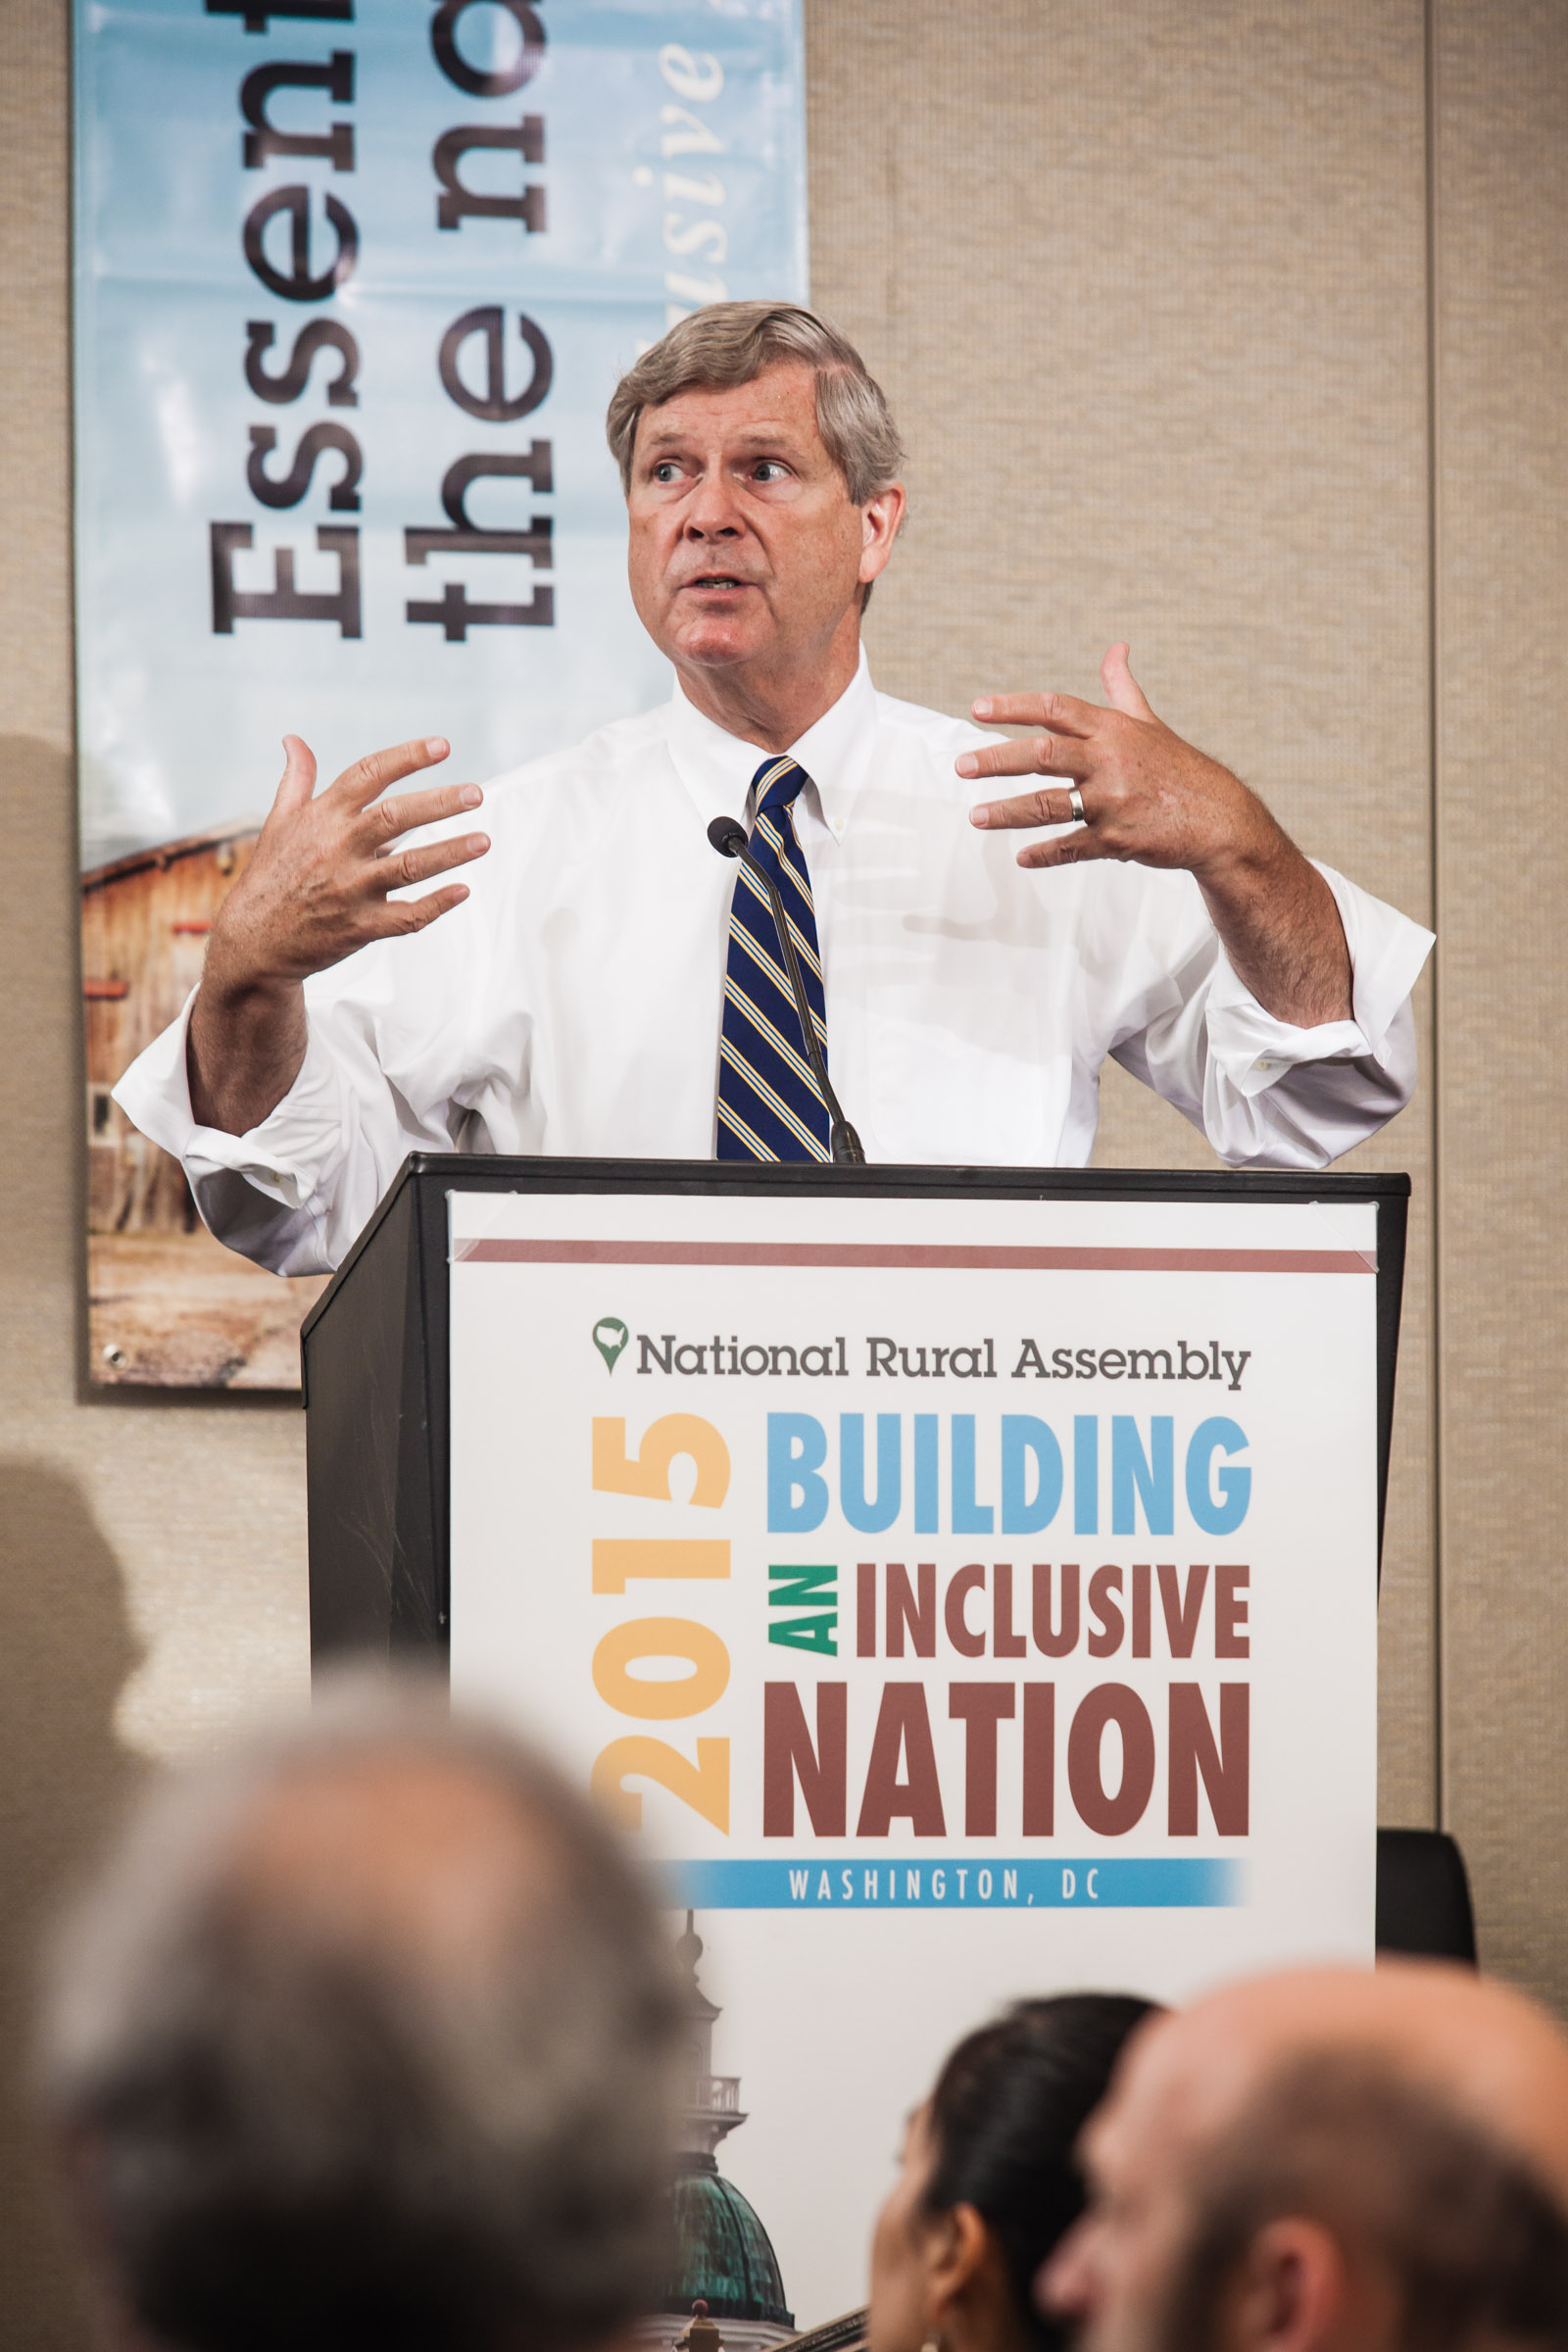 U.S. Secretary of Agriculture Tom Vilsack spoke at the National Rural Assembly in September. Photo by Shawn Poynter/The Daily Yonder